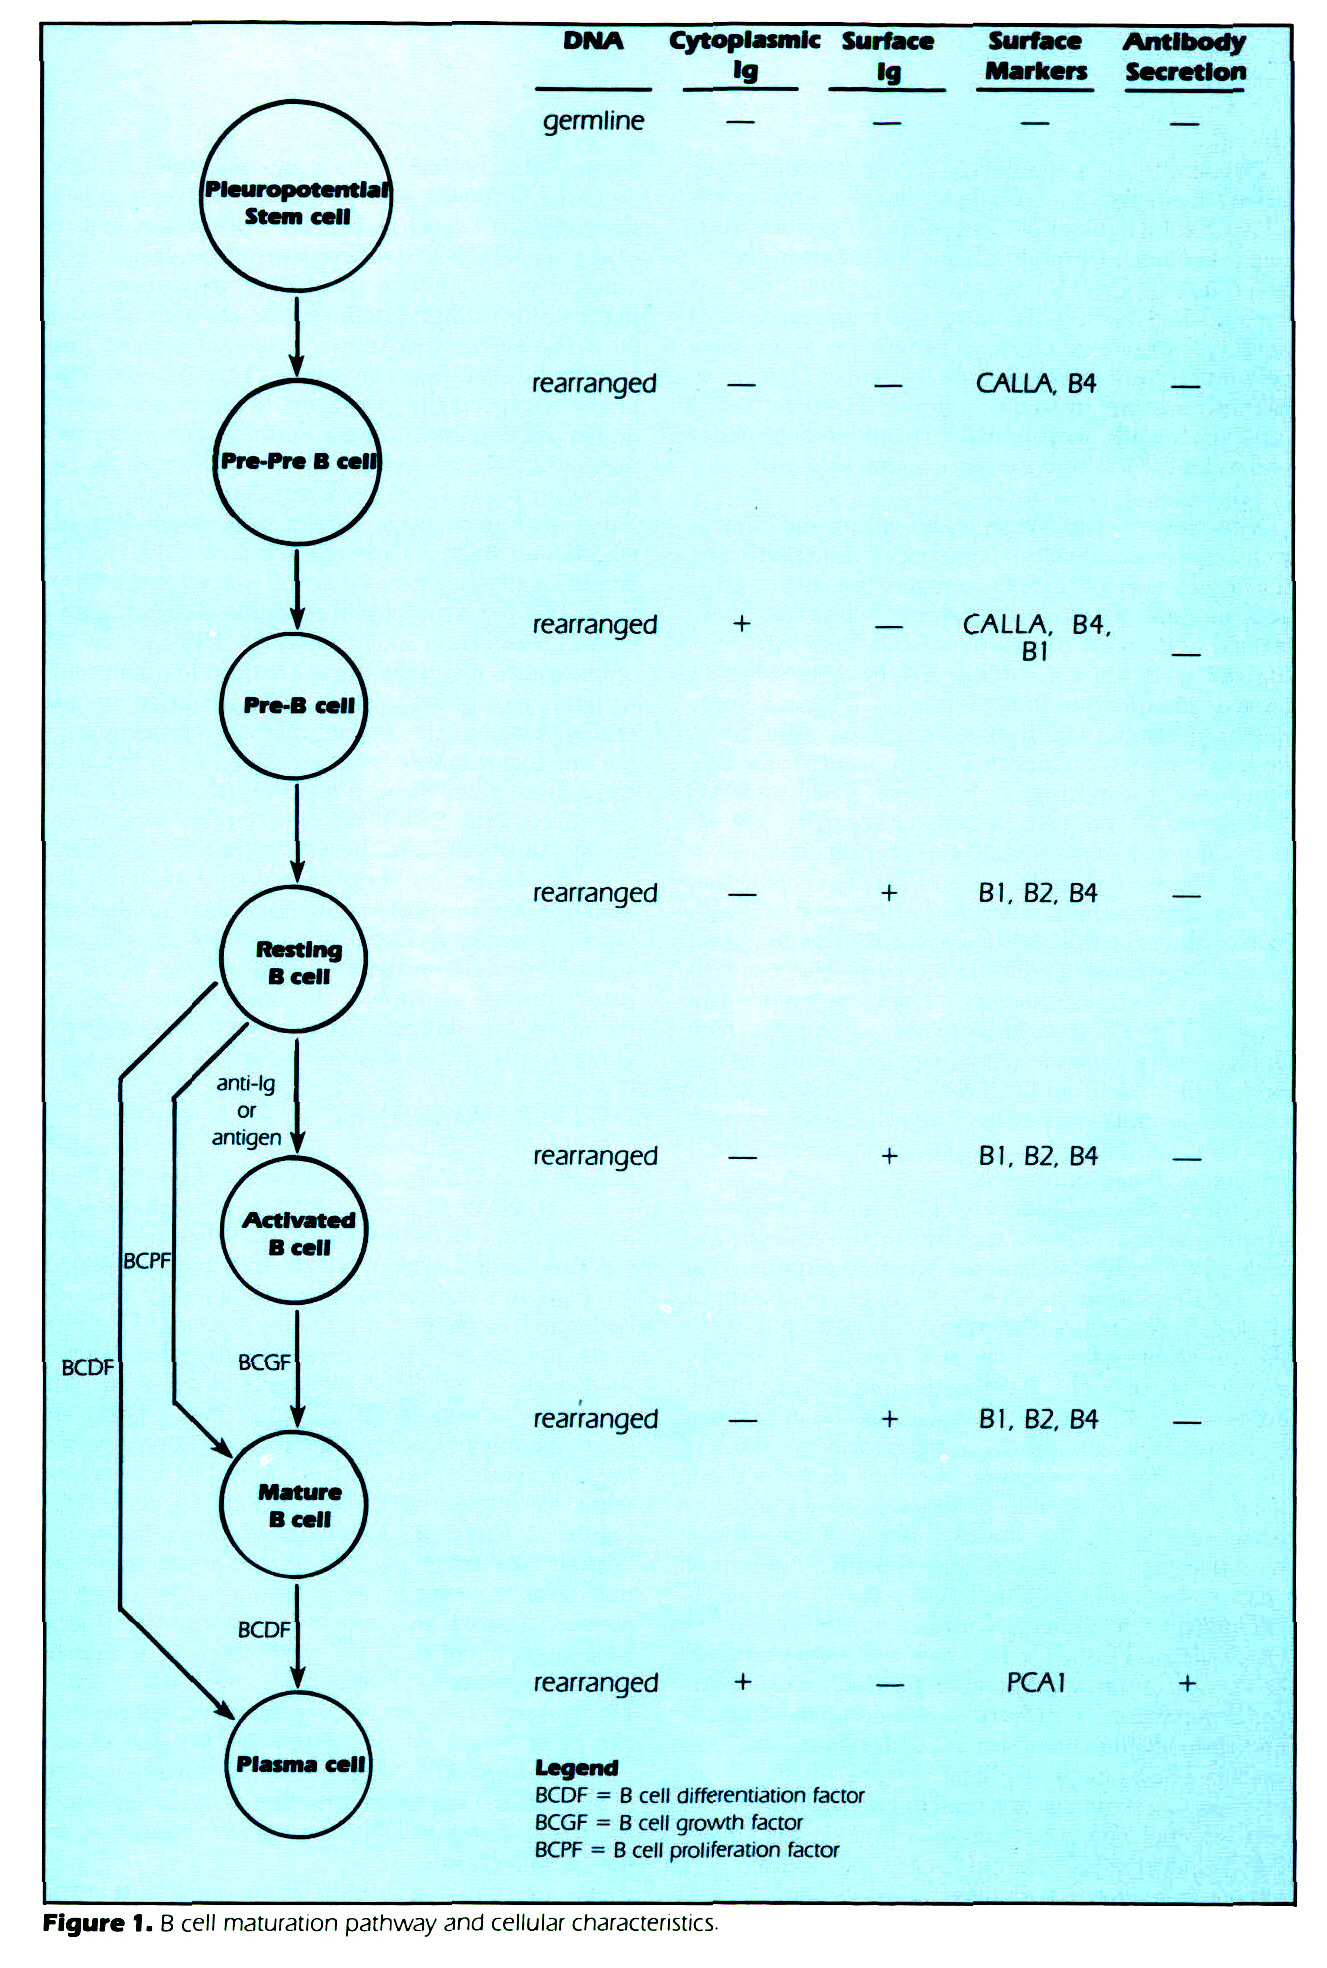 Figure 1. B cell maturation pathway and cellular characteristics.